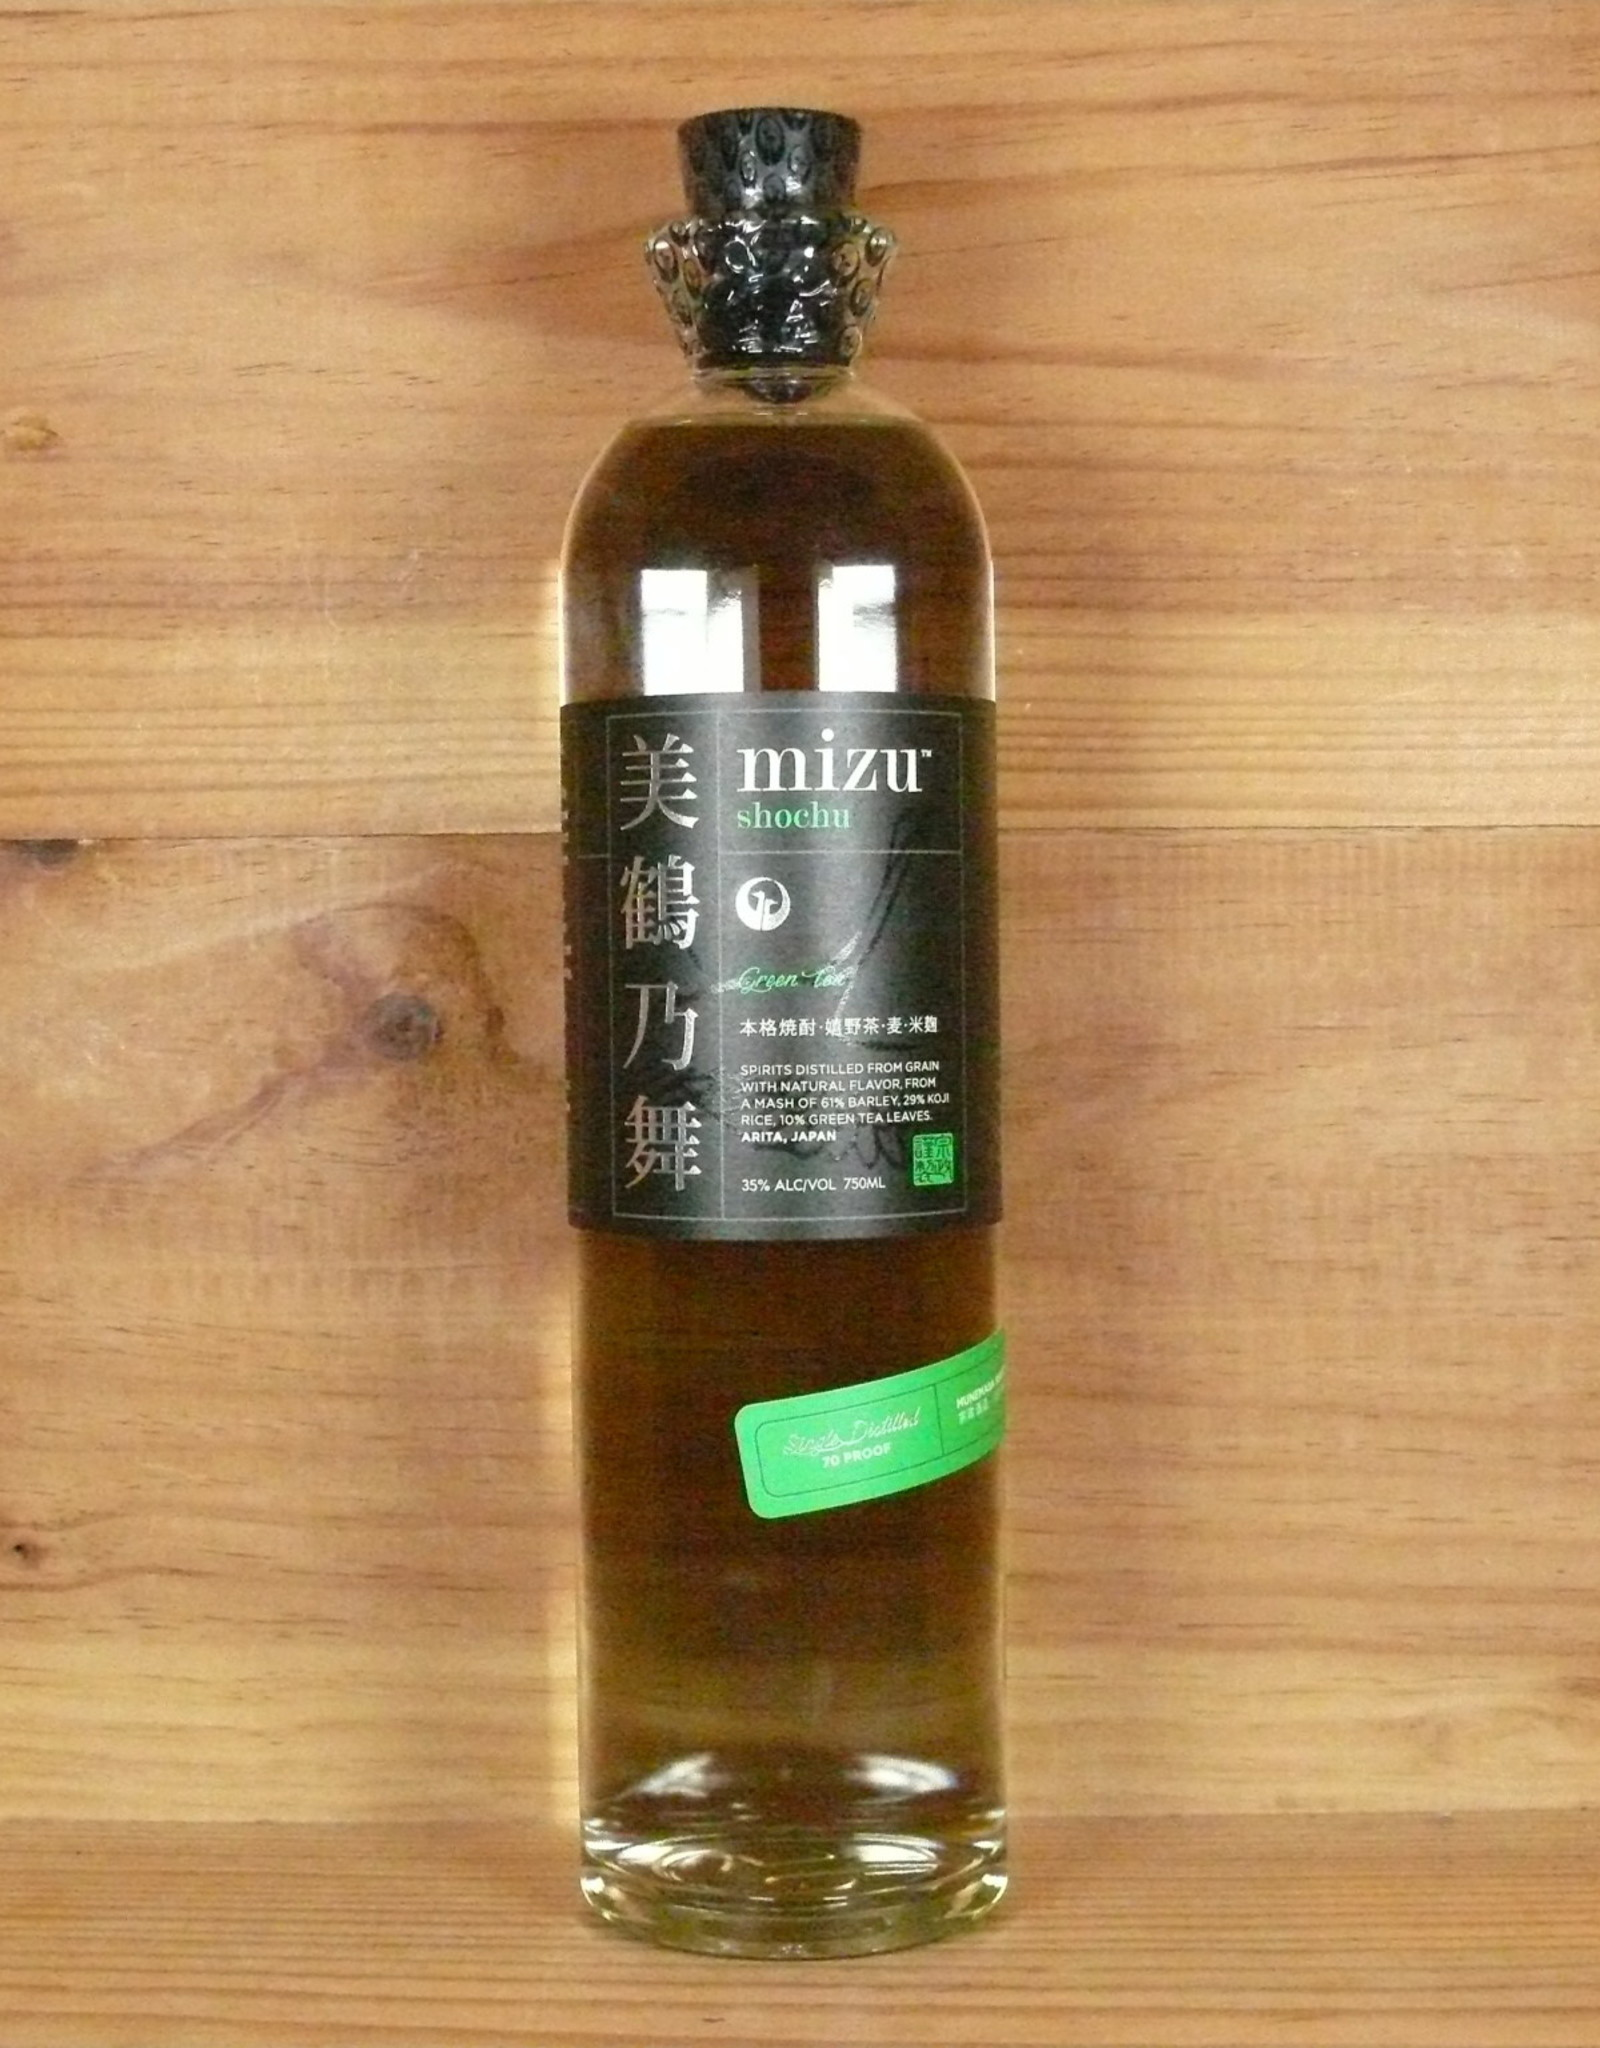 Mizu - Green Tea Shochu